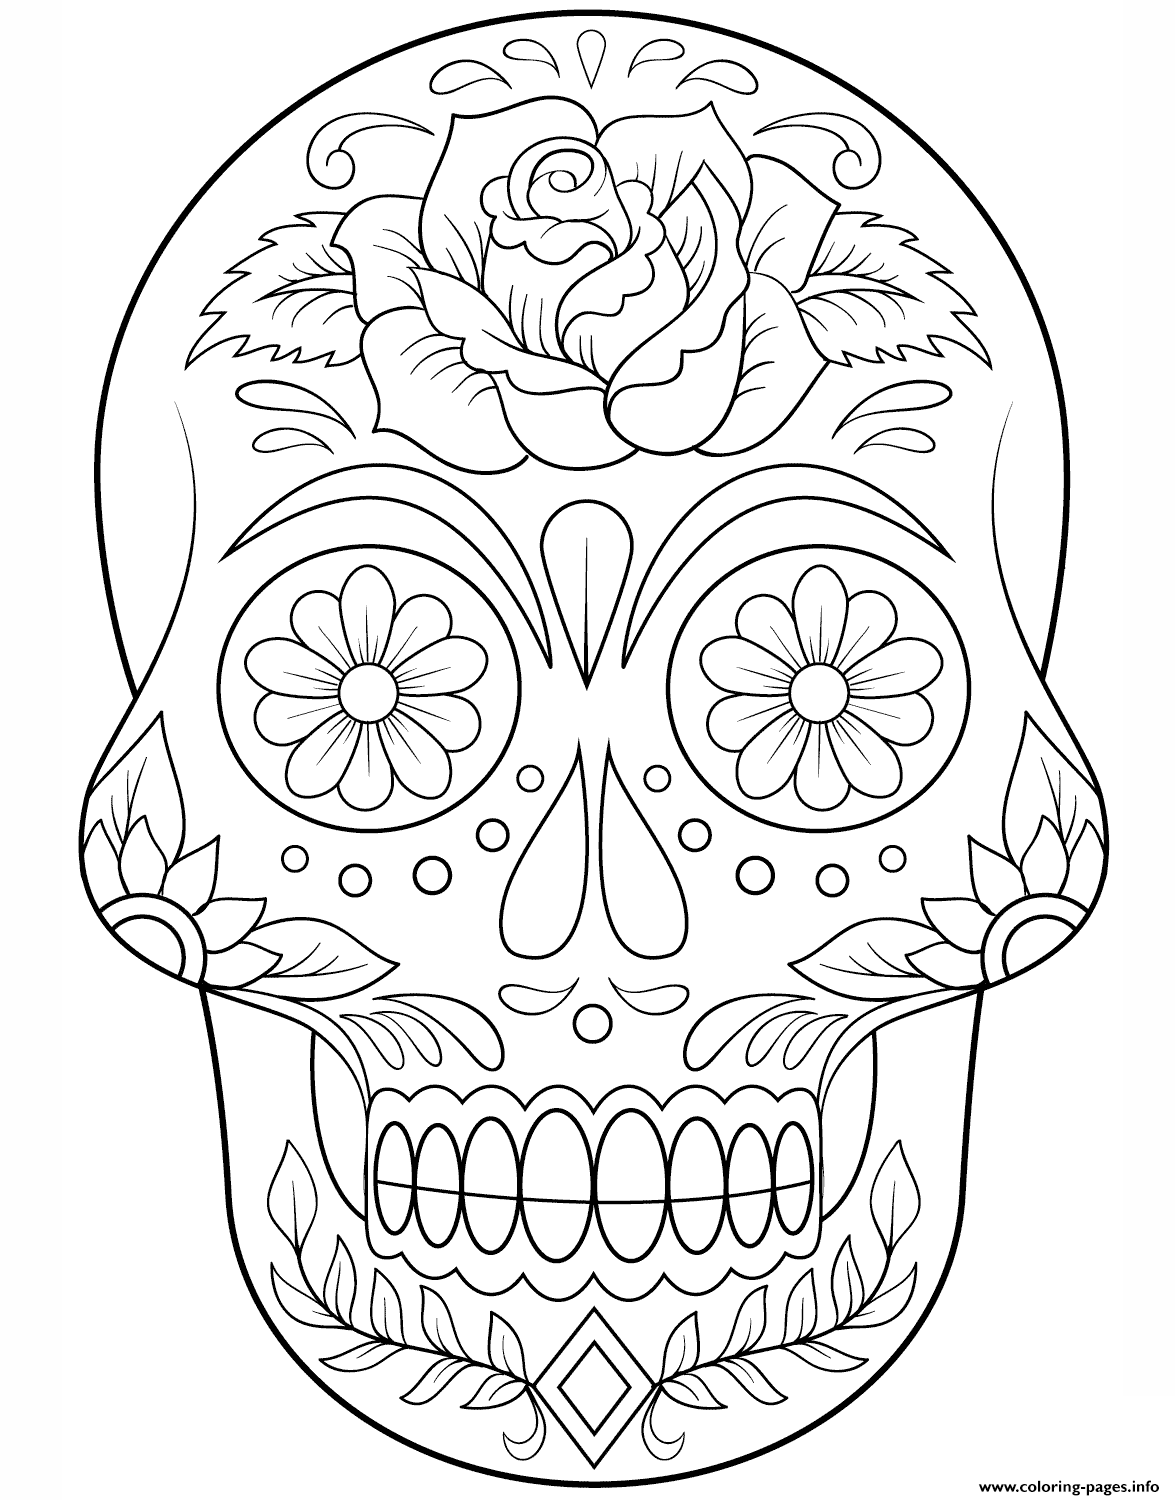 Sugar Skull With Flowers Calavera coloring pages